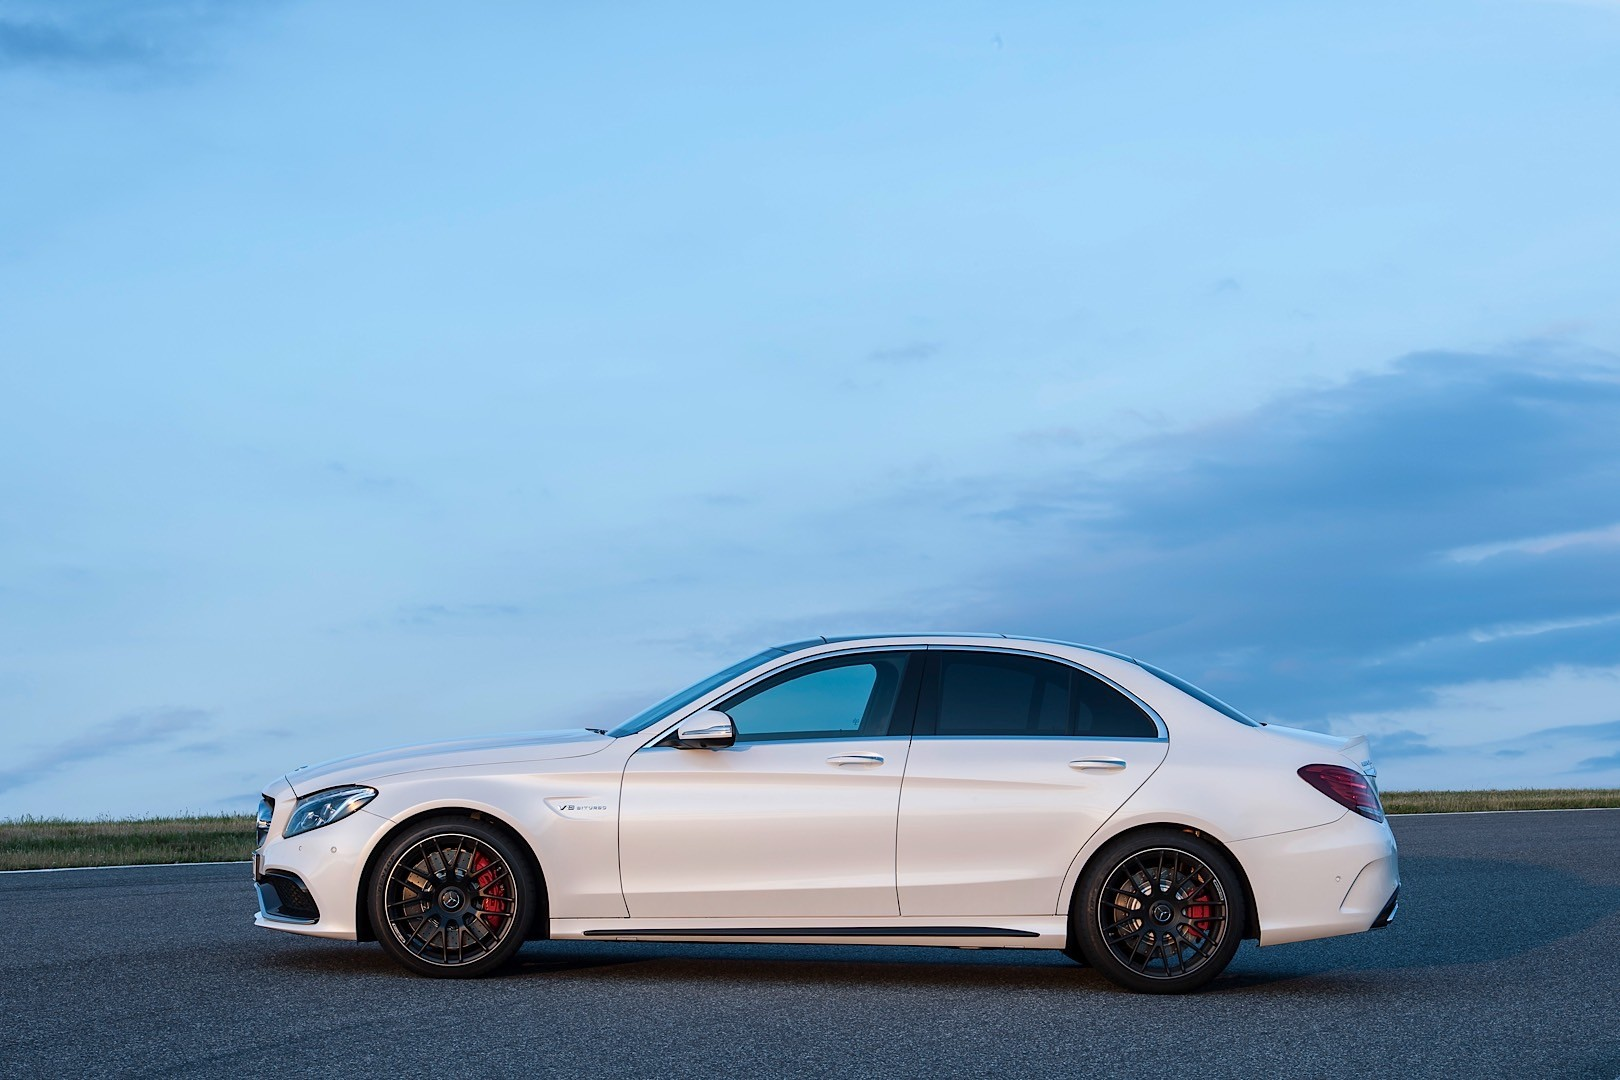 2014 mercedes c63 amg edition 507 us pricing revealed for 2014 mercedes benz c63 amg edition 507 for sale